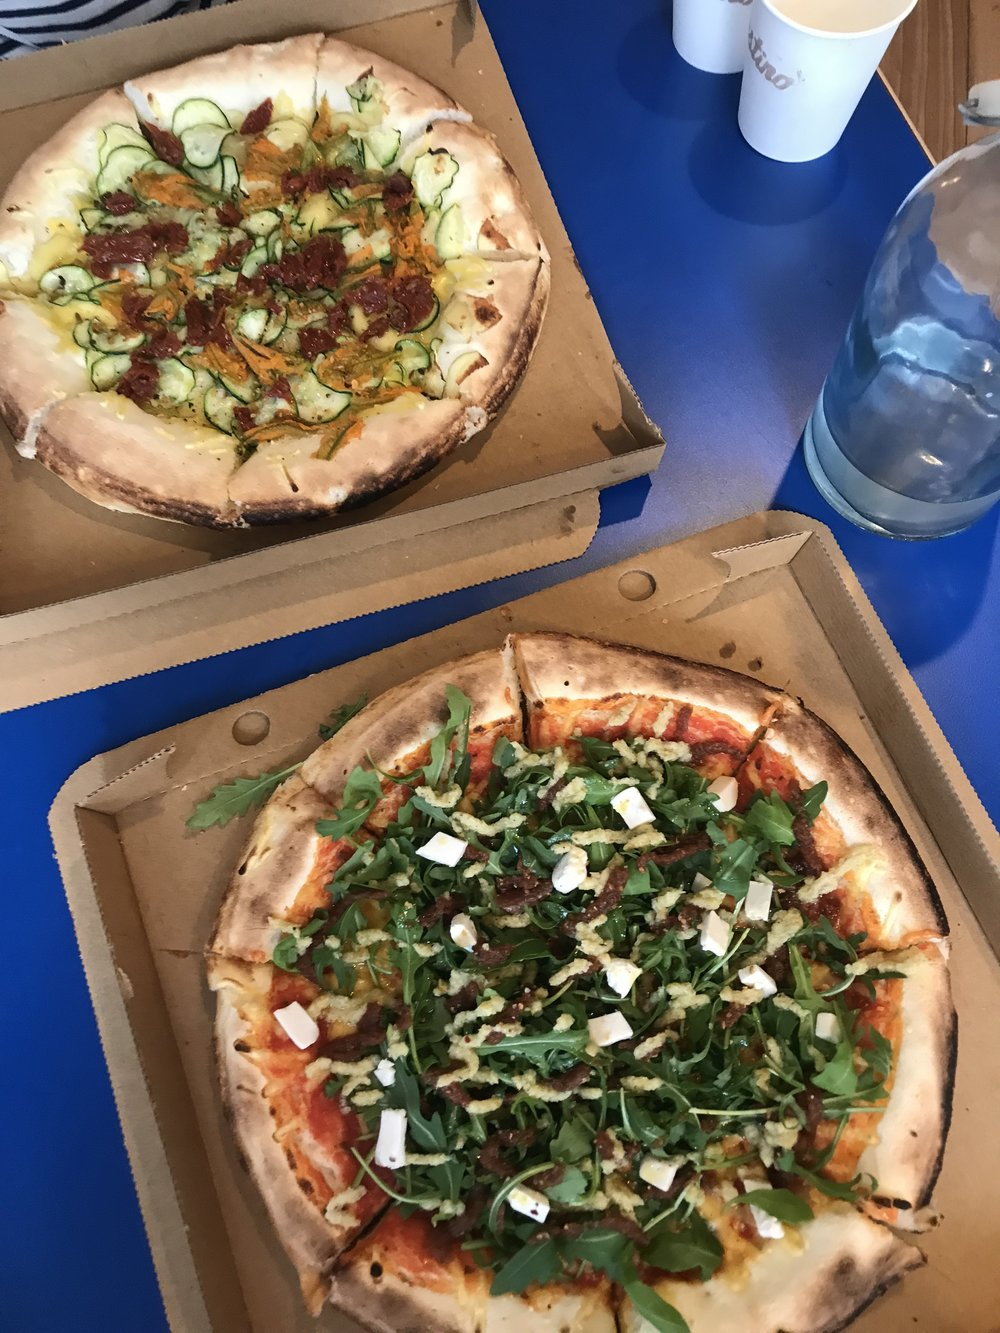 (L) New Vegan Pizza (R) can't find the name online but will keep looking